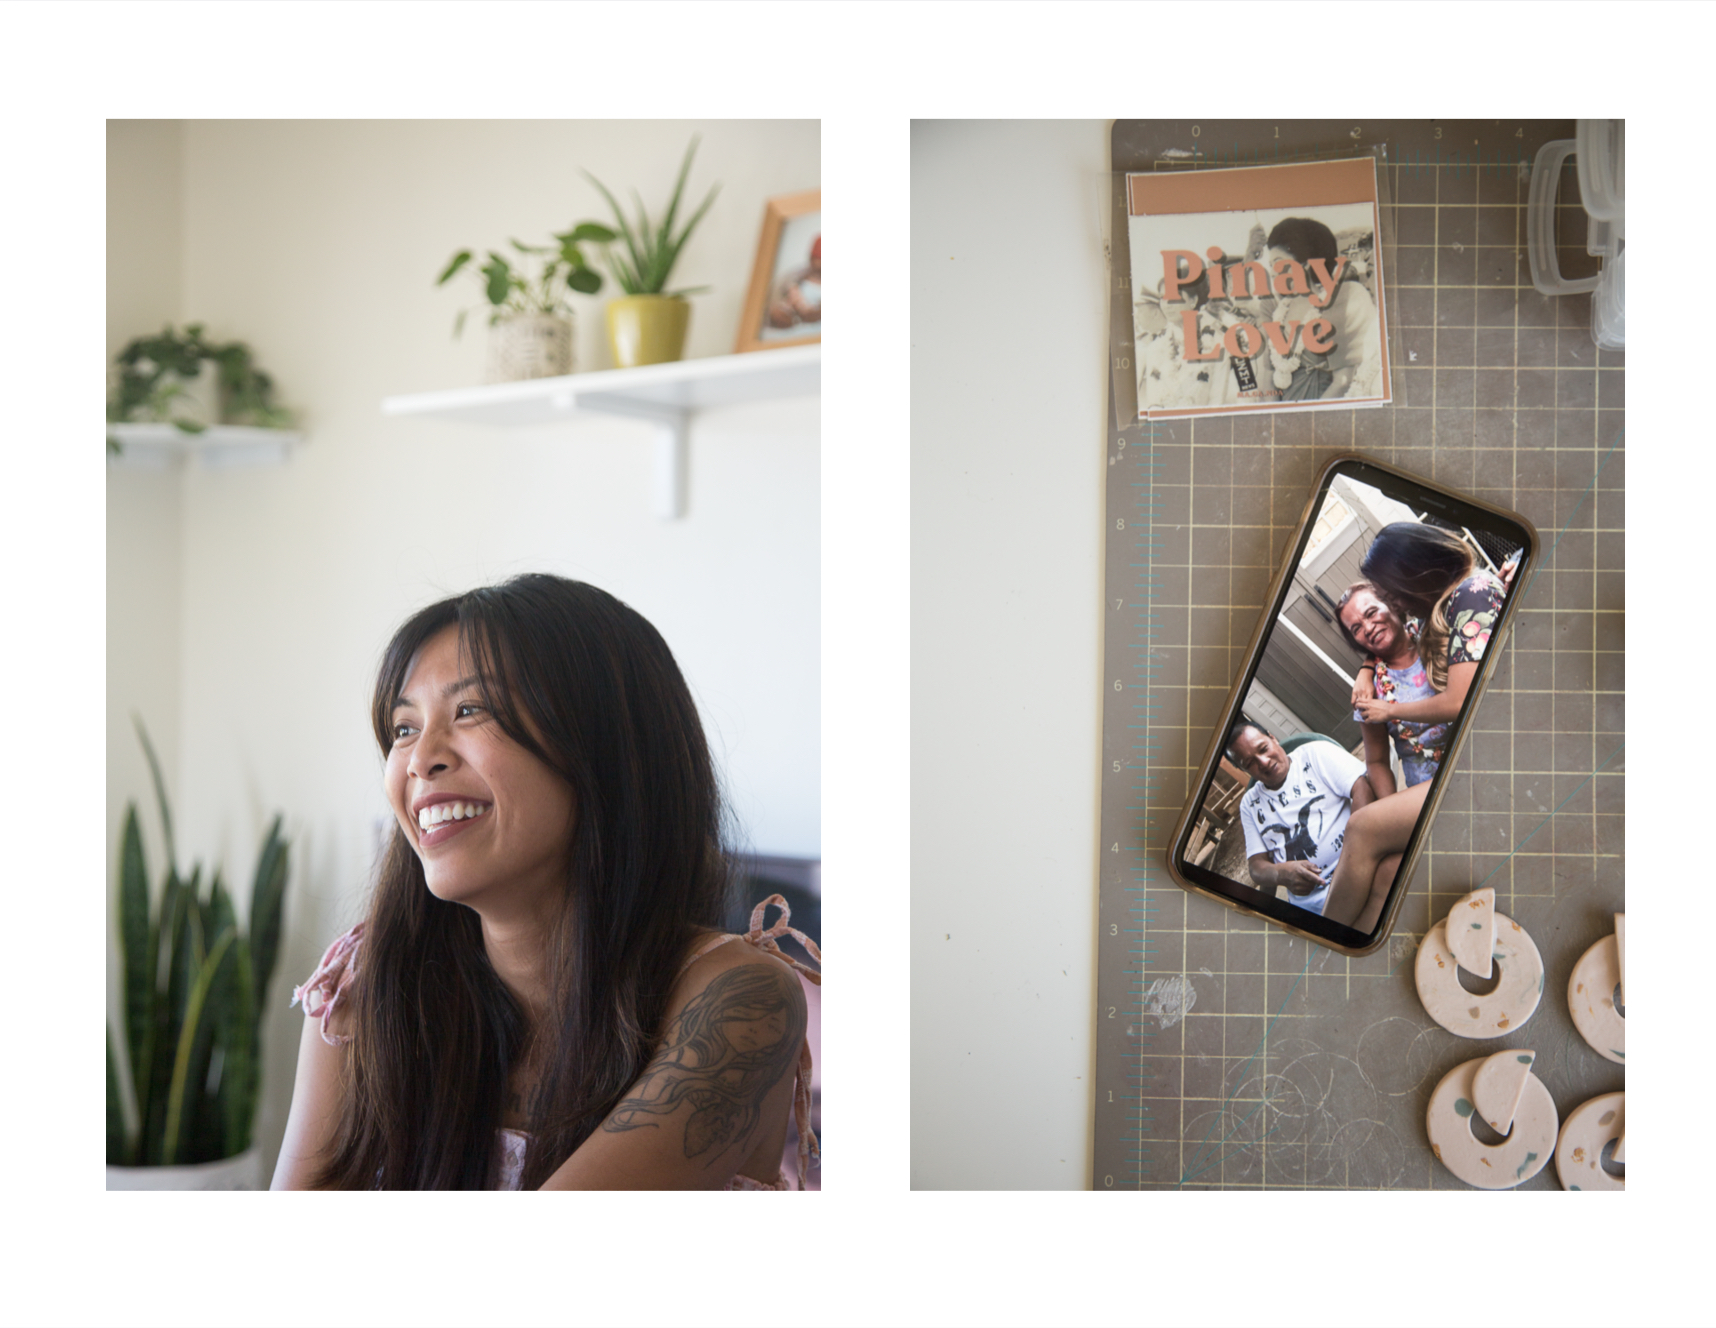 Baye Lacar poses for a portrait in her Mililani, HI home. Lacar is the founder of MA.GA.NDA, a small jewelry line that translates to beautiful in the Tagalog dialect. She was raised on the Waipahu side of Oʻahu, a city that has a large Filipino population. Her connection to her culture is through her grandparents.